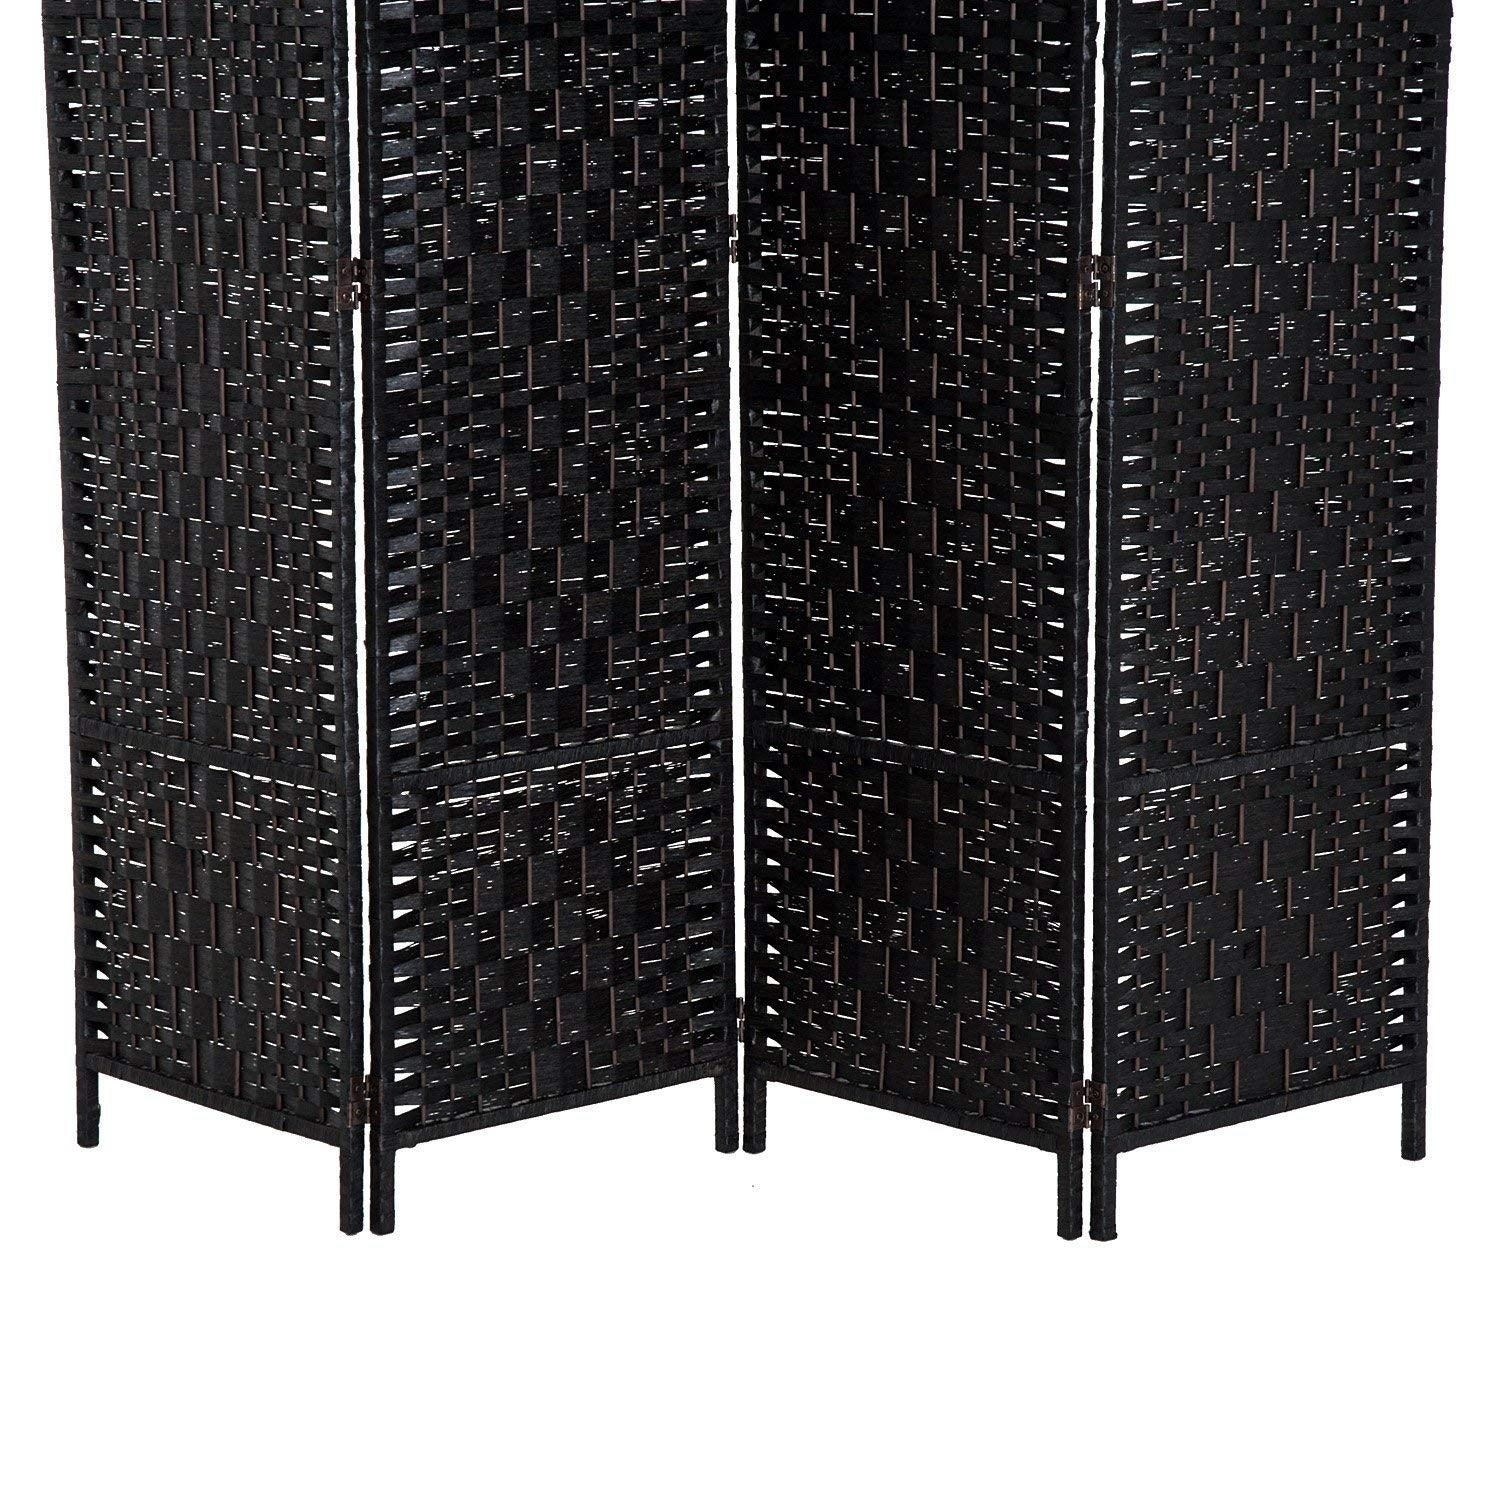 Homcom 6 Tall Wicker Weave Four Panel Room Divider Privacy